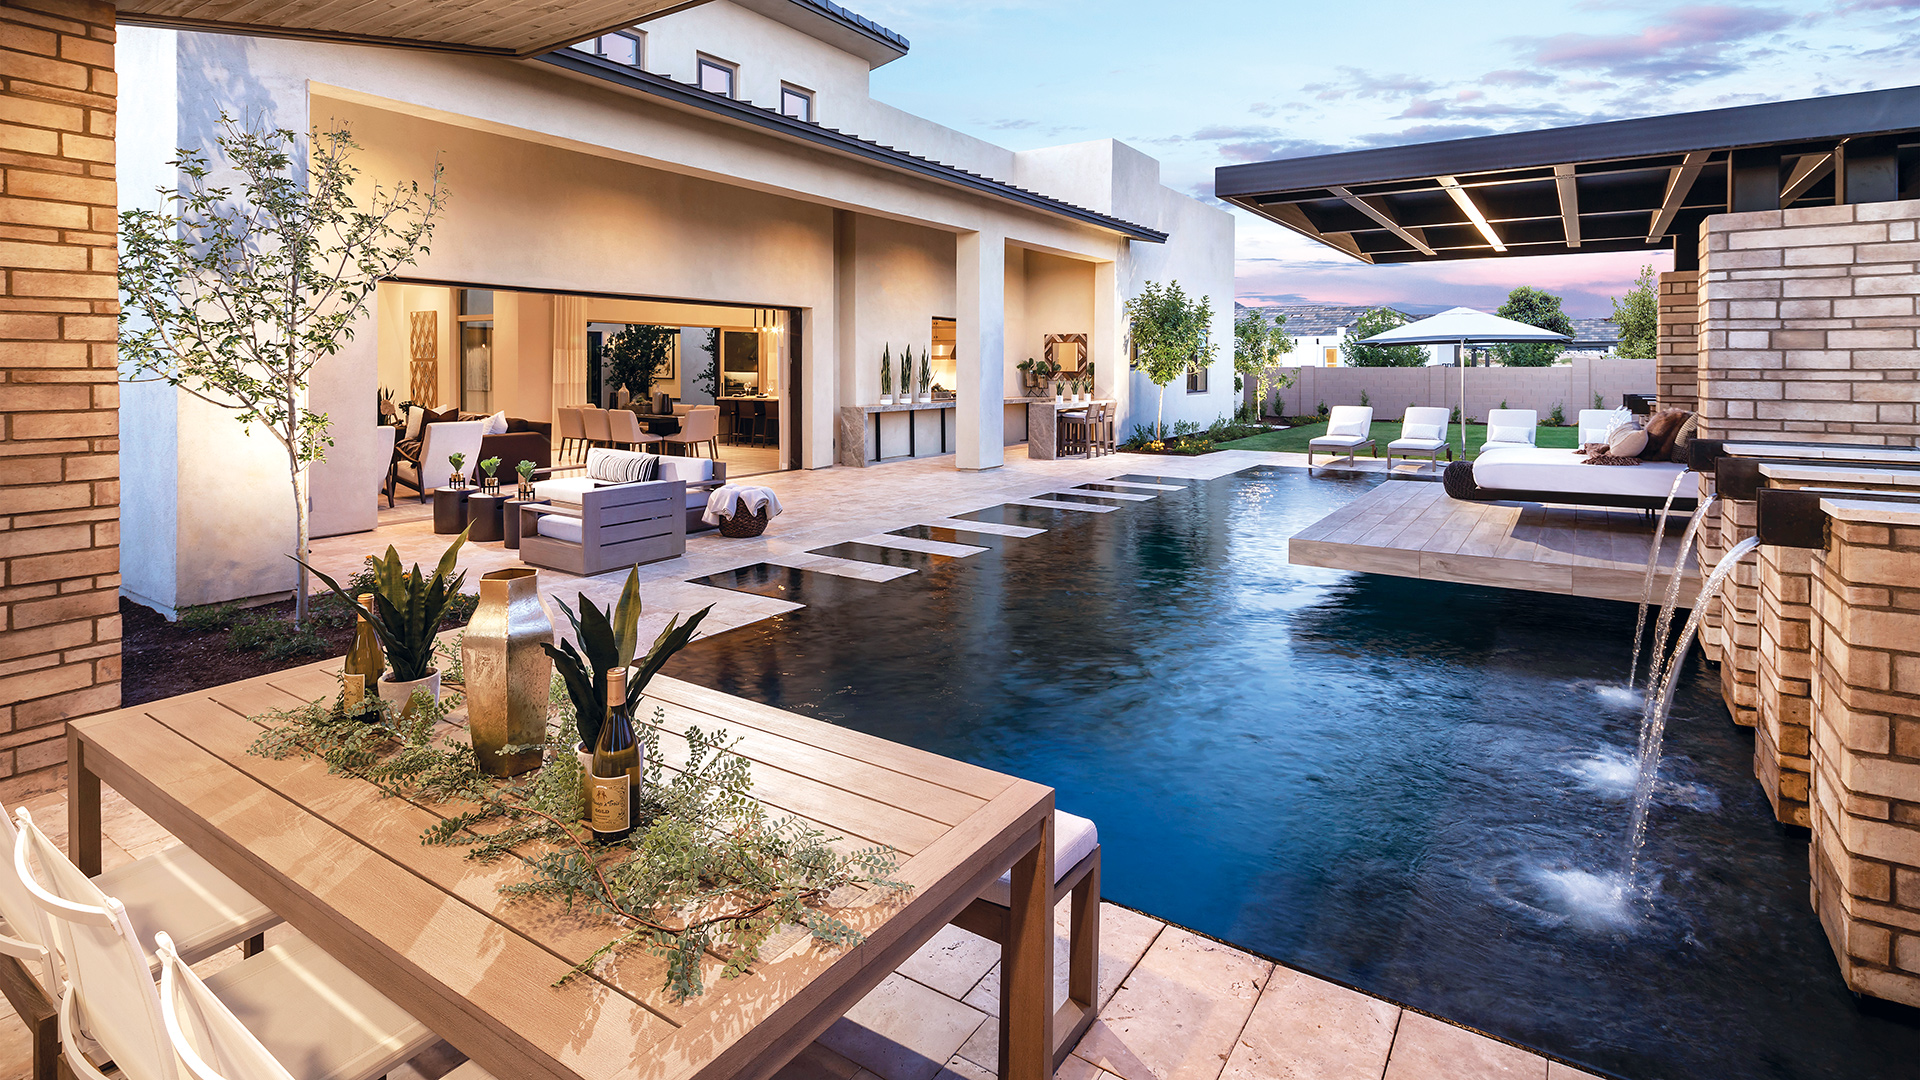 Stunning extended covered patios for outdoor living and entertaining